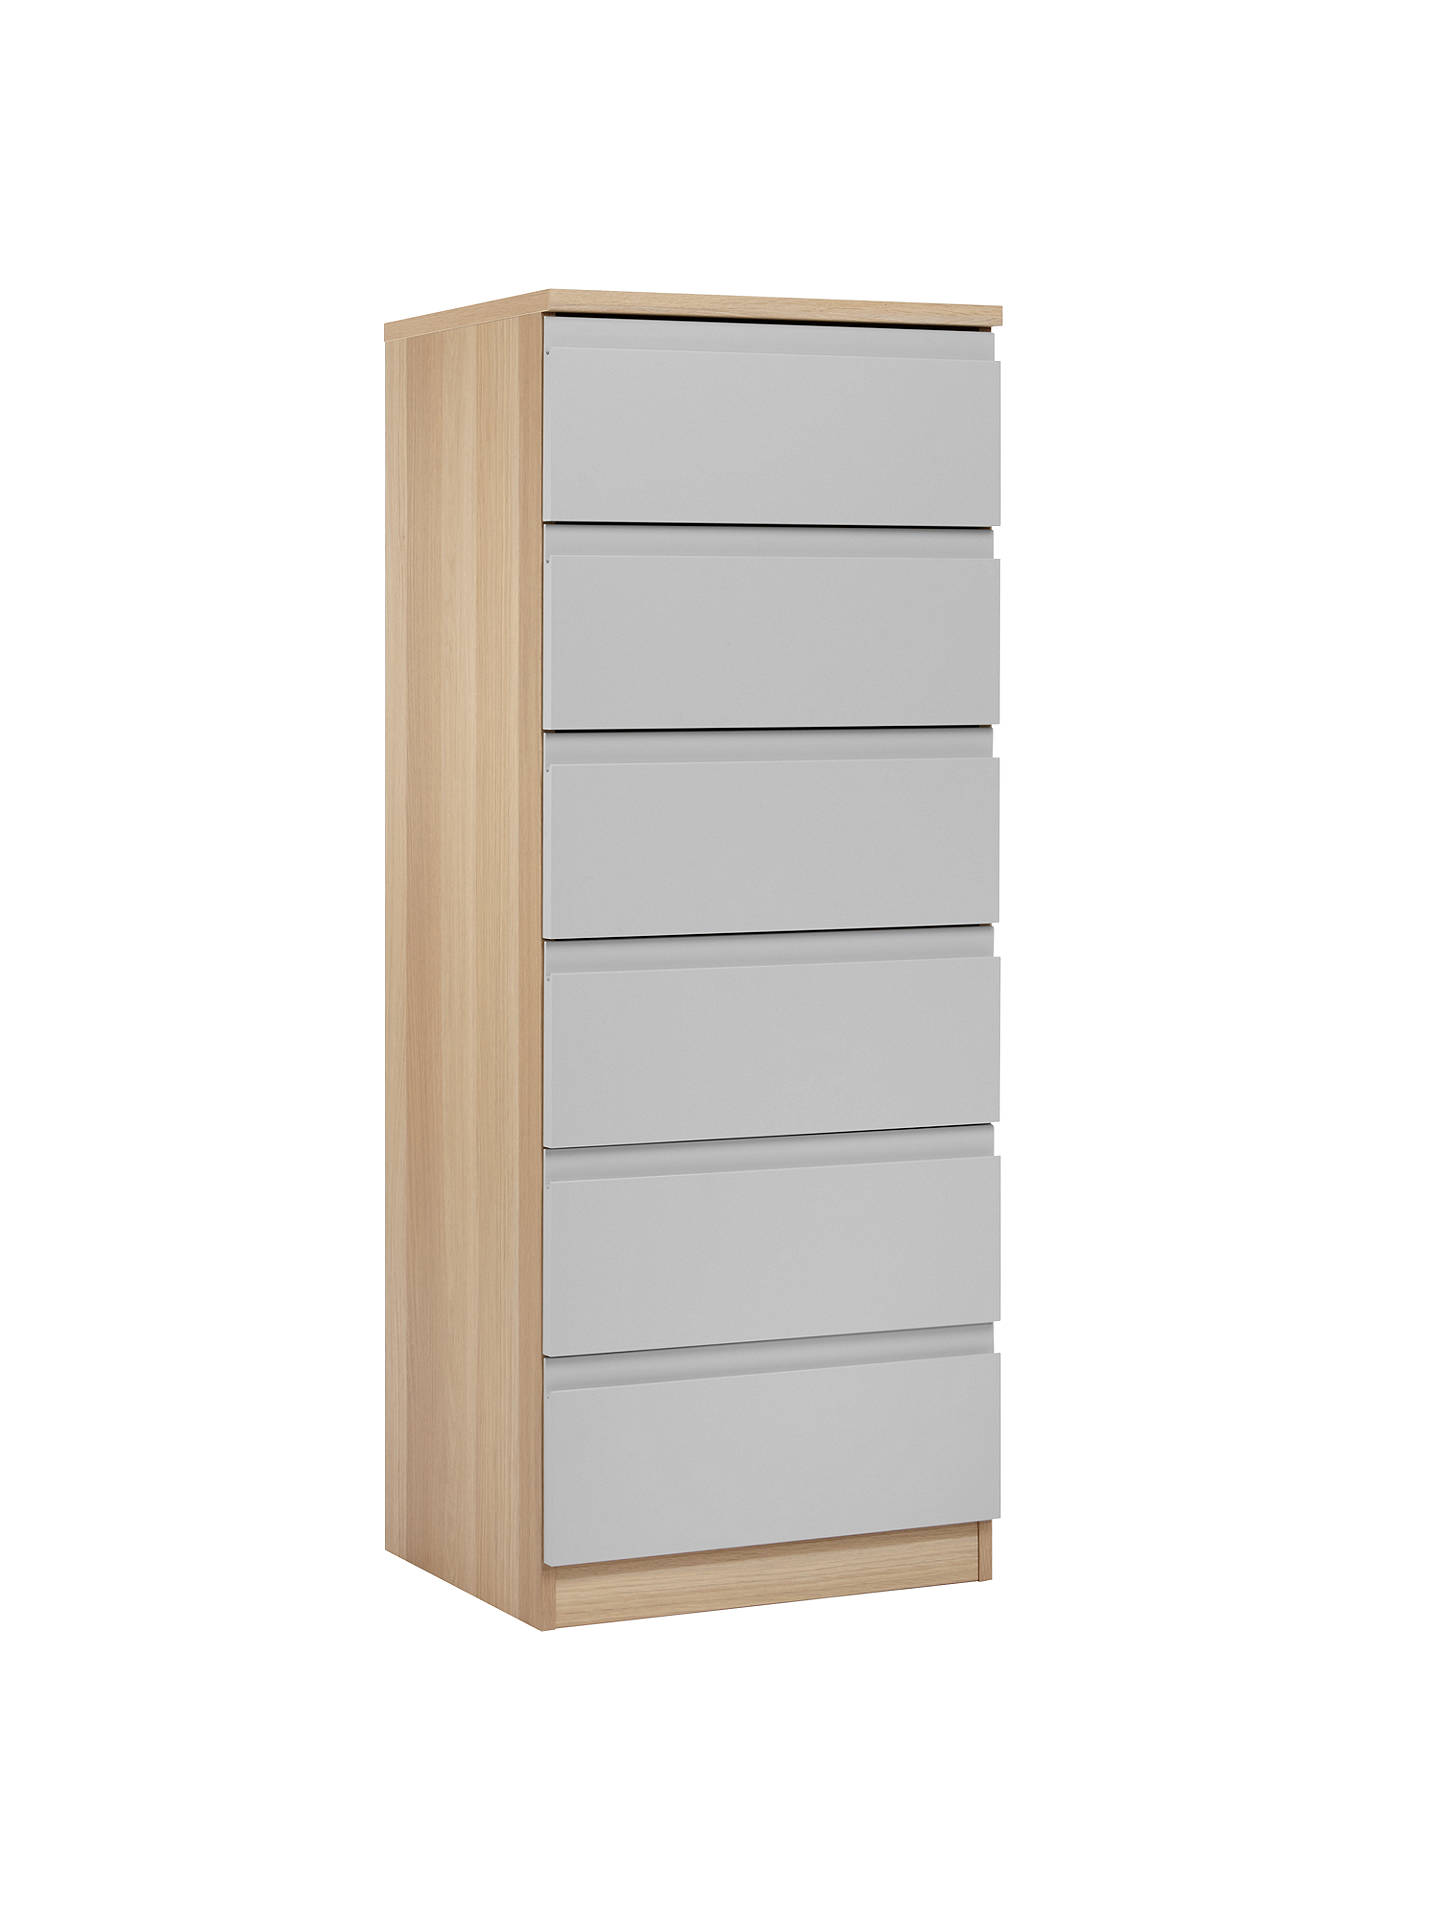 BuyHouse by John Lewis Mix it Narrow 6 Drawer Chest, House Smoke/Natural Oak Online at johnlewis.com